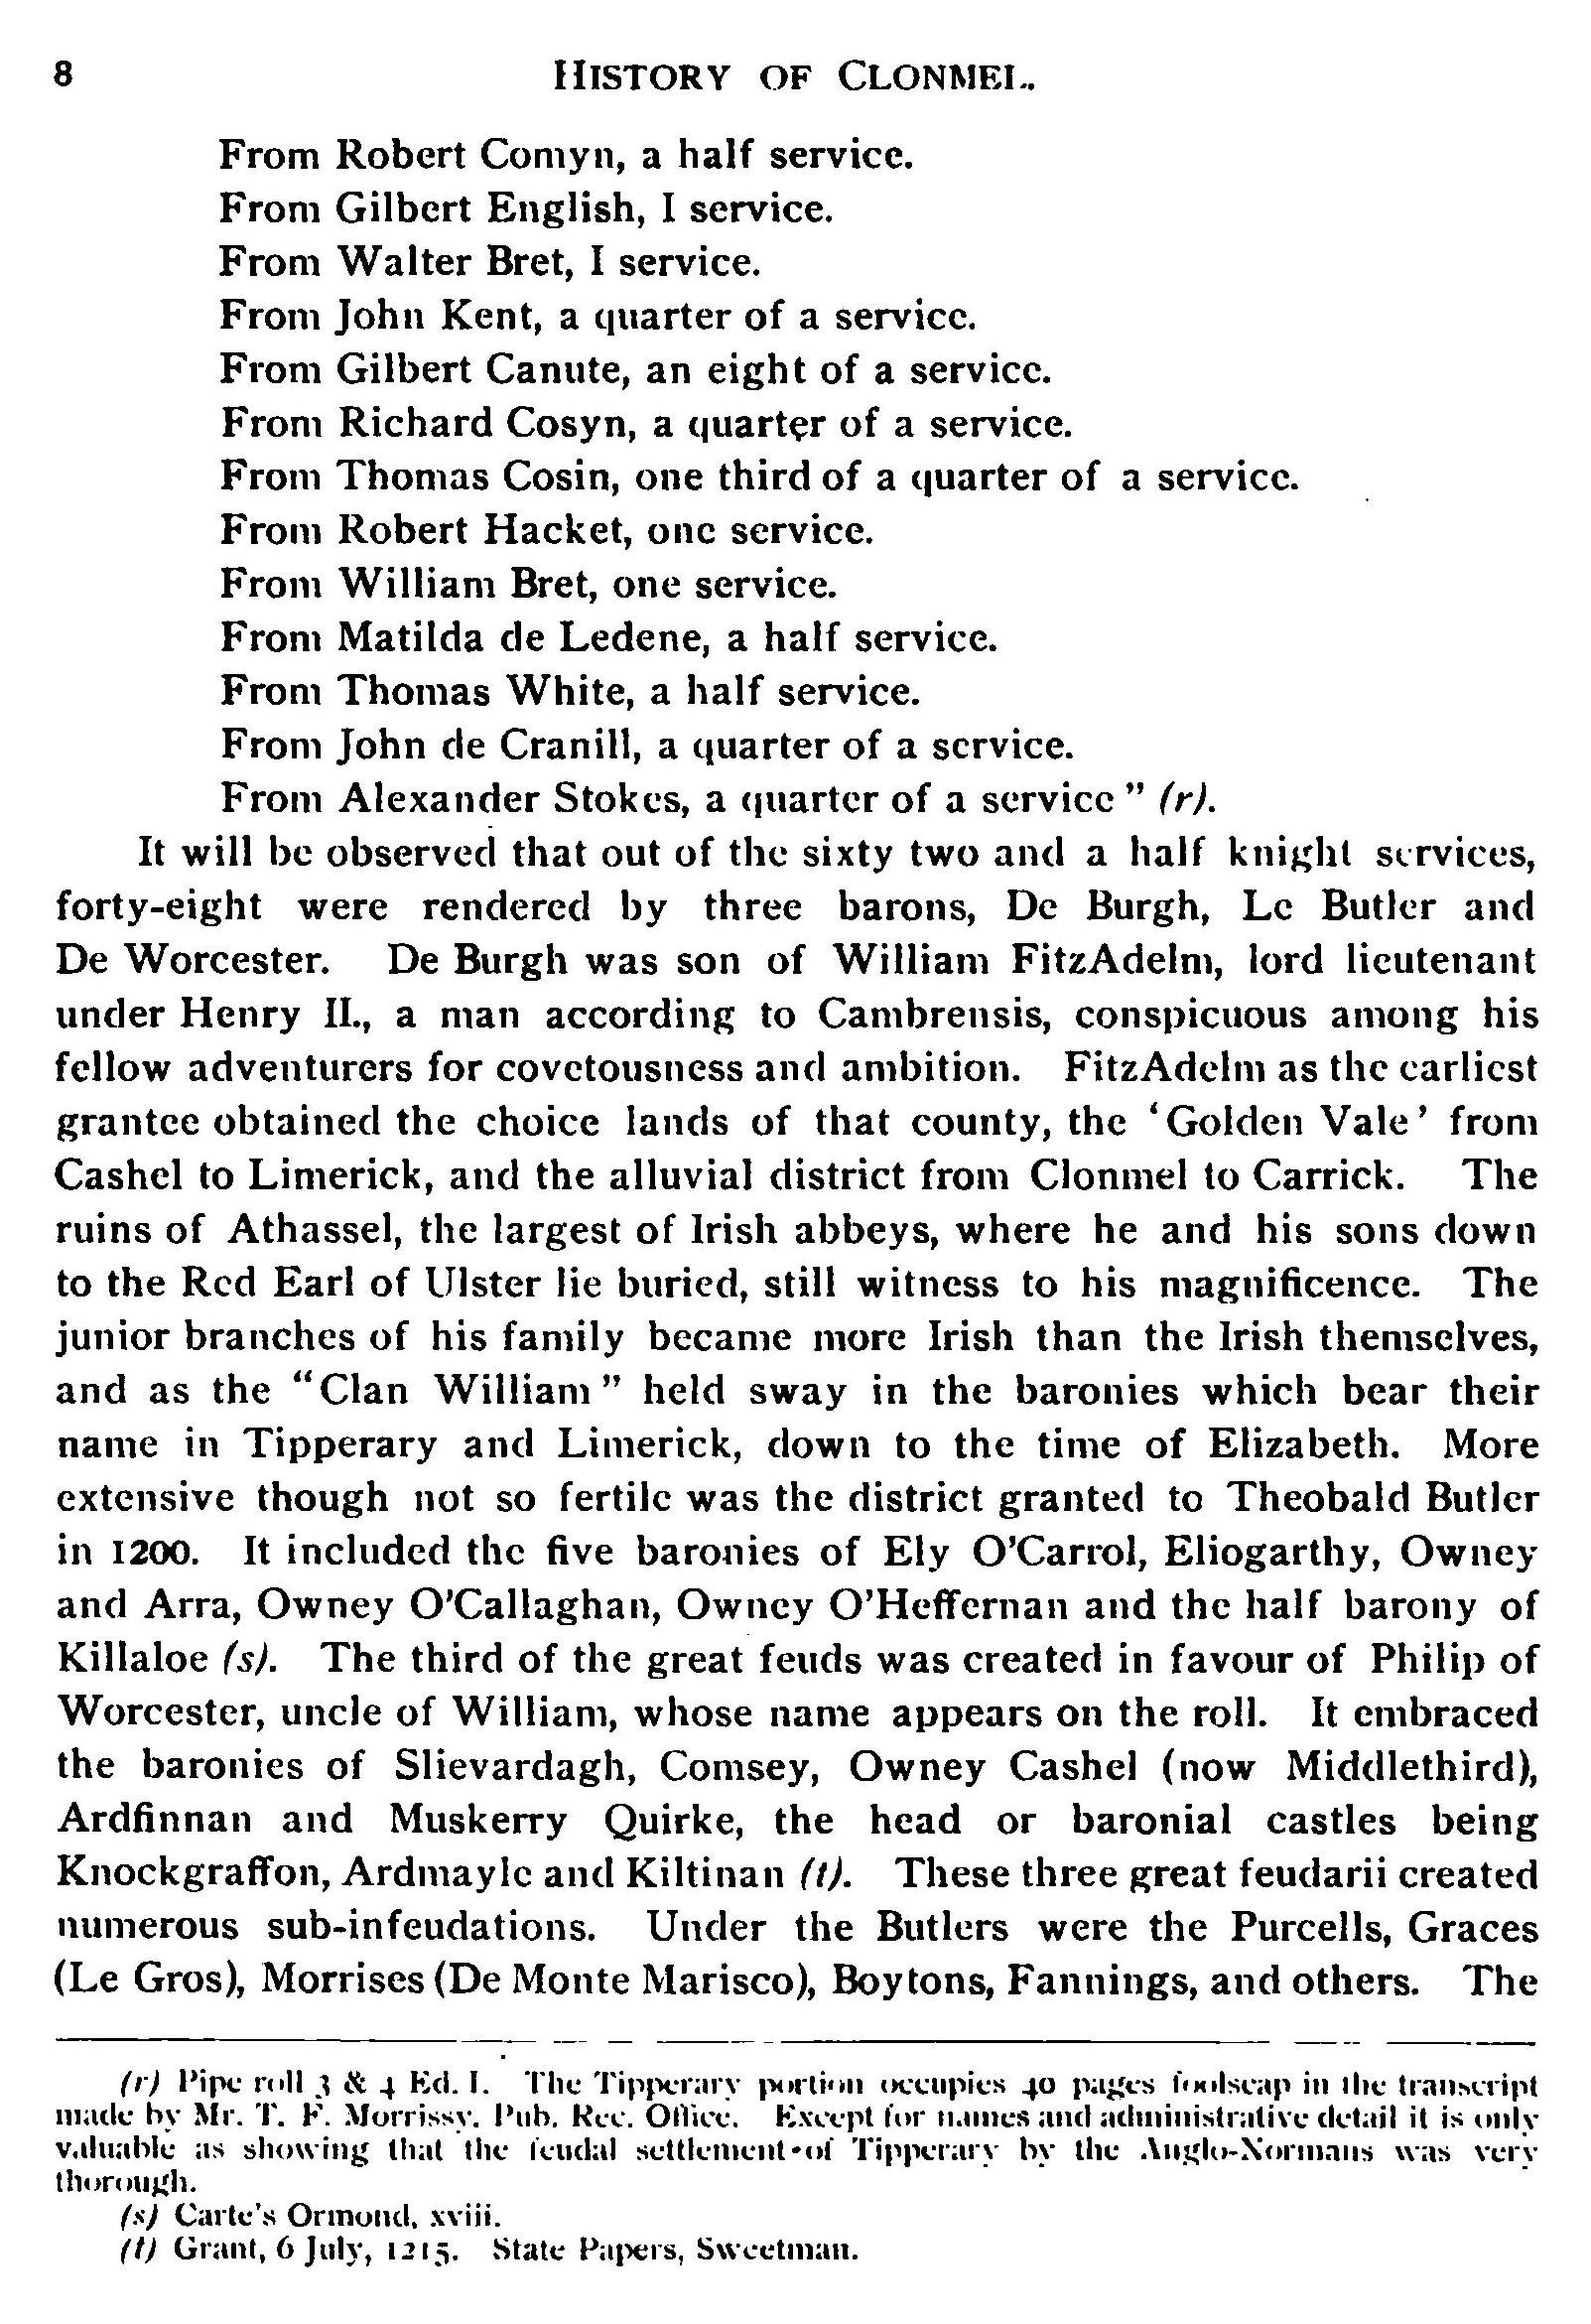 History of Clonmel page 8cropped